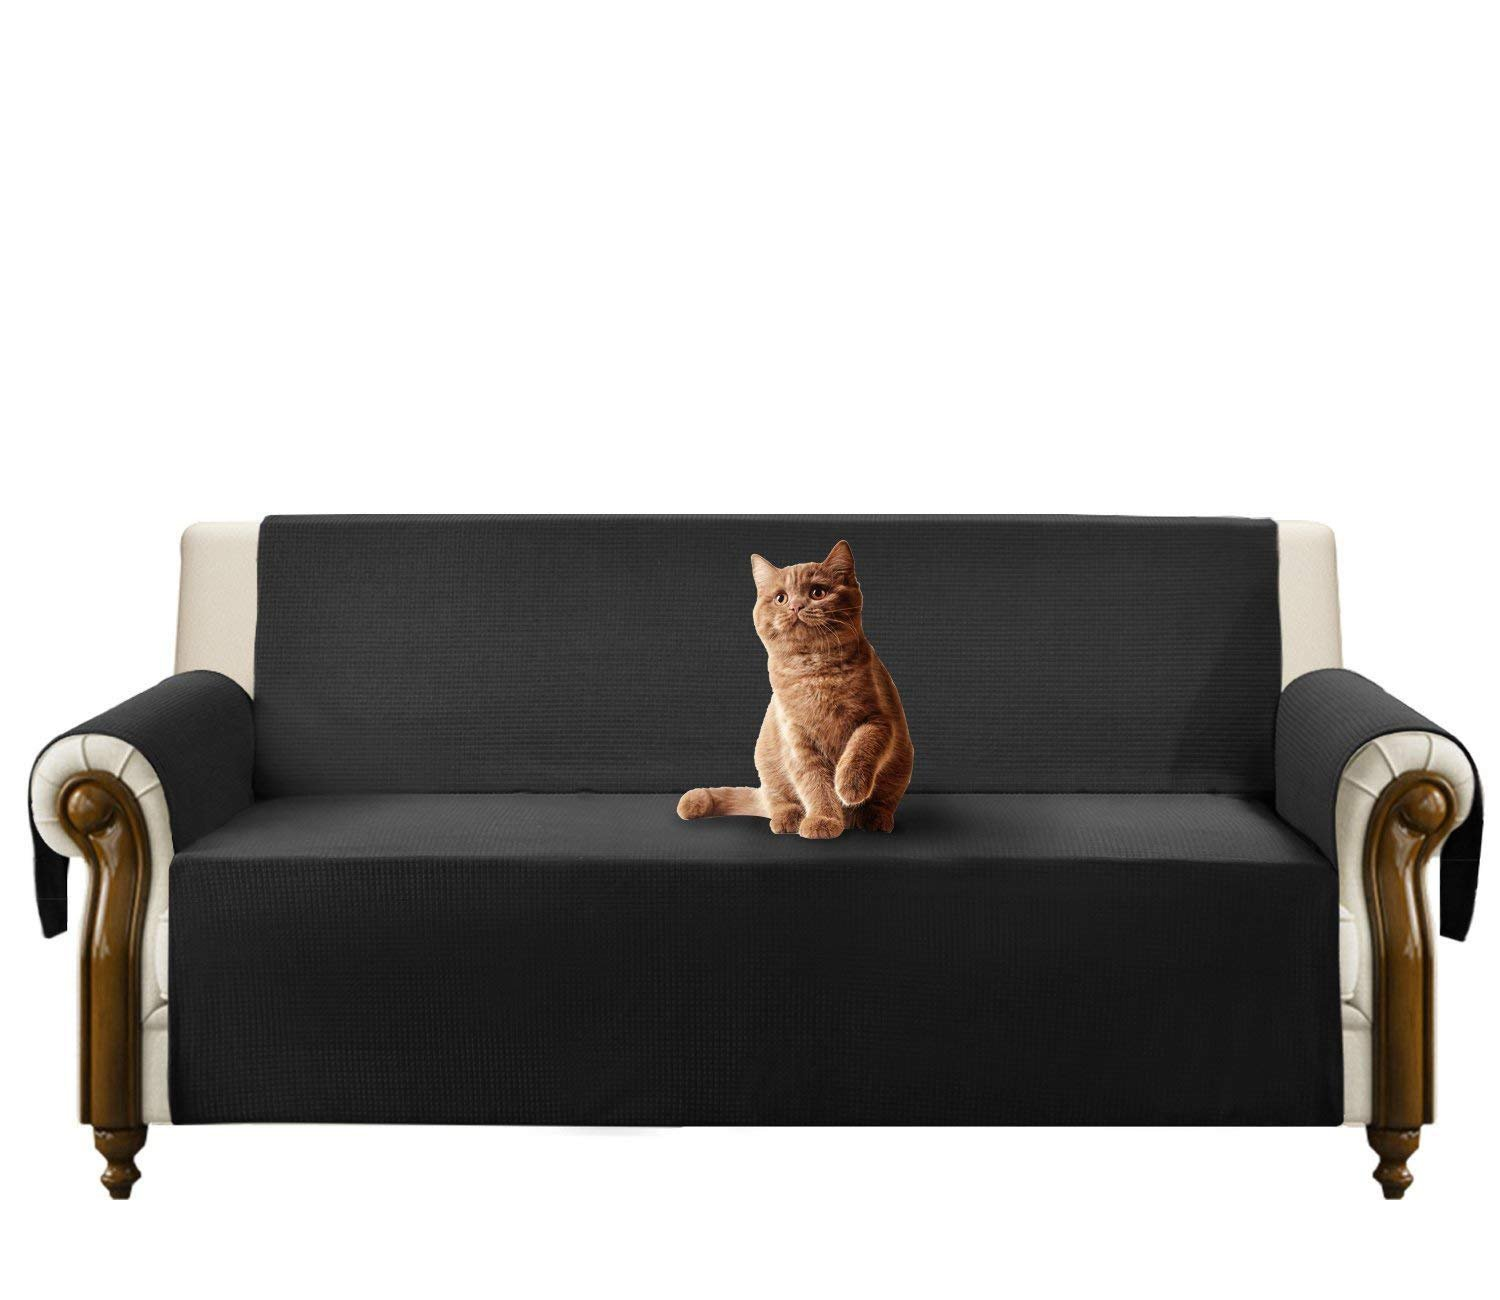 JIATER Improved Non-Slip Pet Dog Sofa Slipcovers Living Room Couch Covers Furniture Protectors (Black, Loveseat)